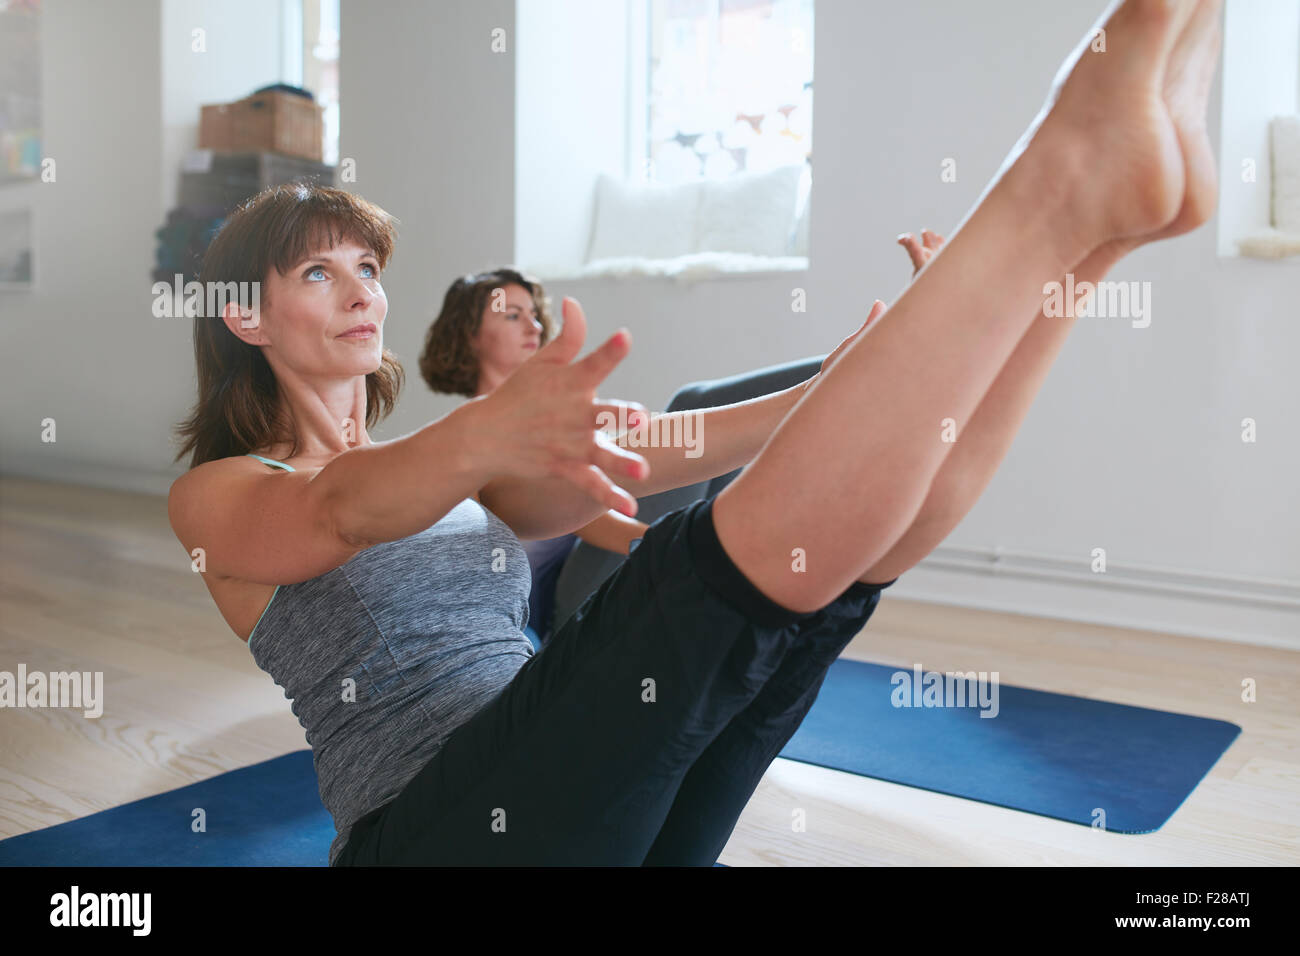 Women practicing stretching and yoga workout exercise together in a health club gym training class session. Two - Stock Image